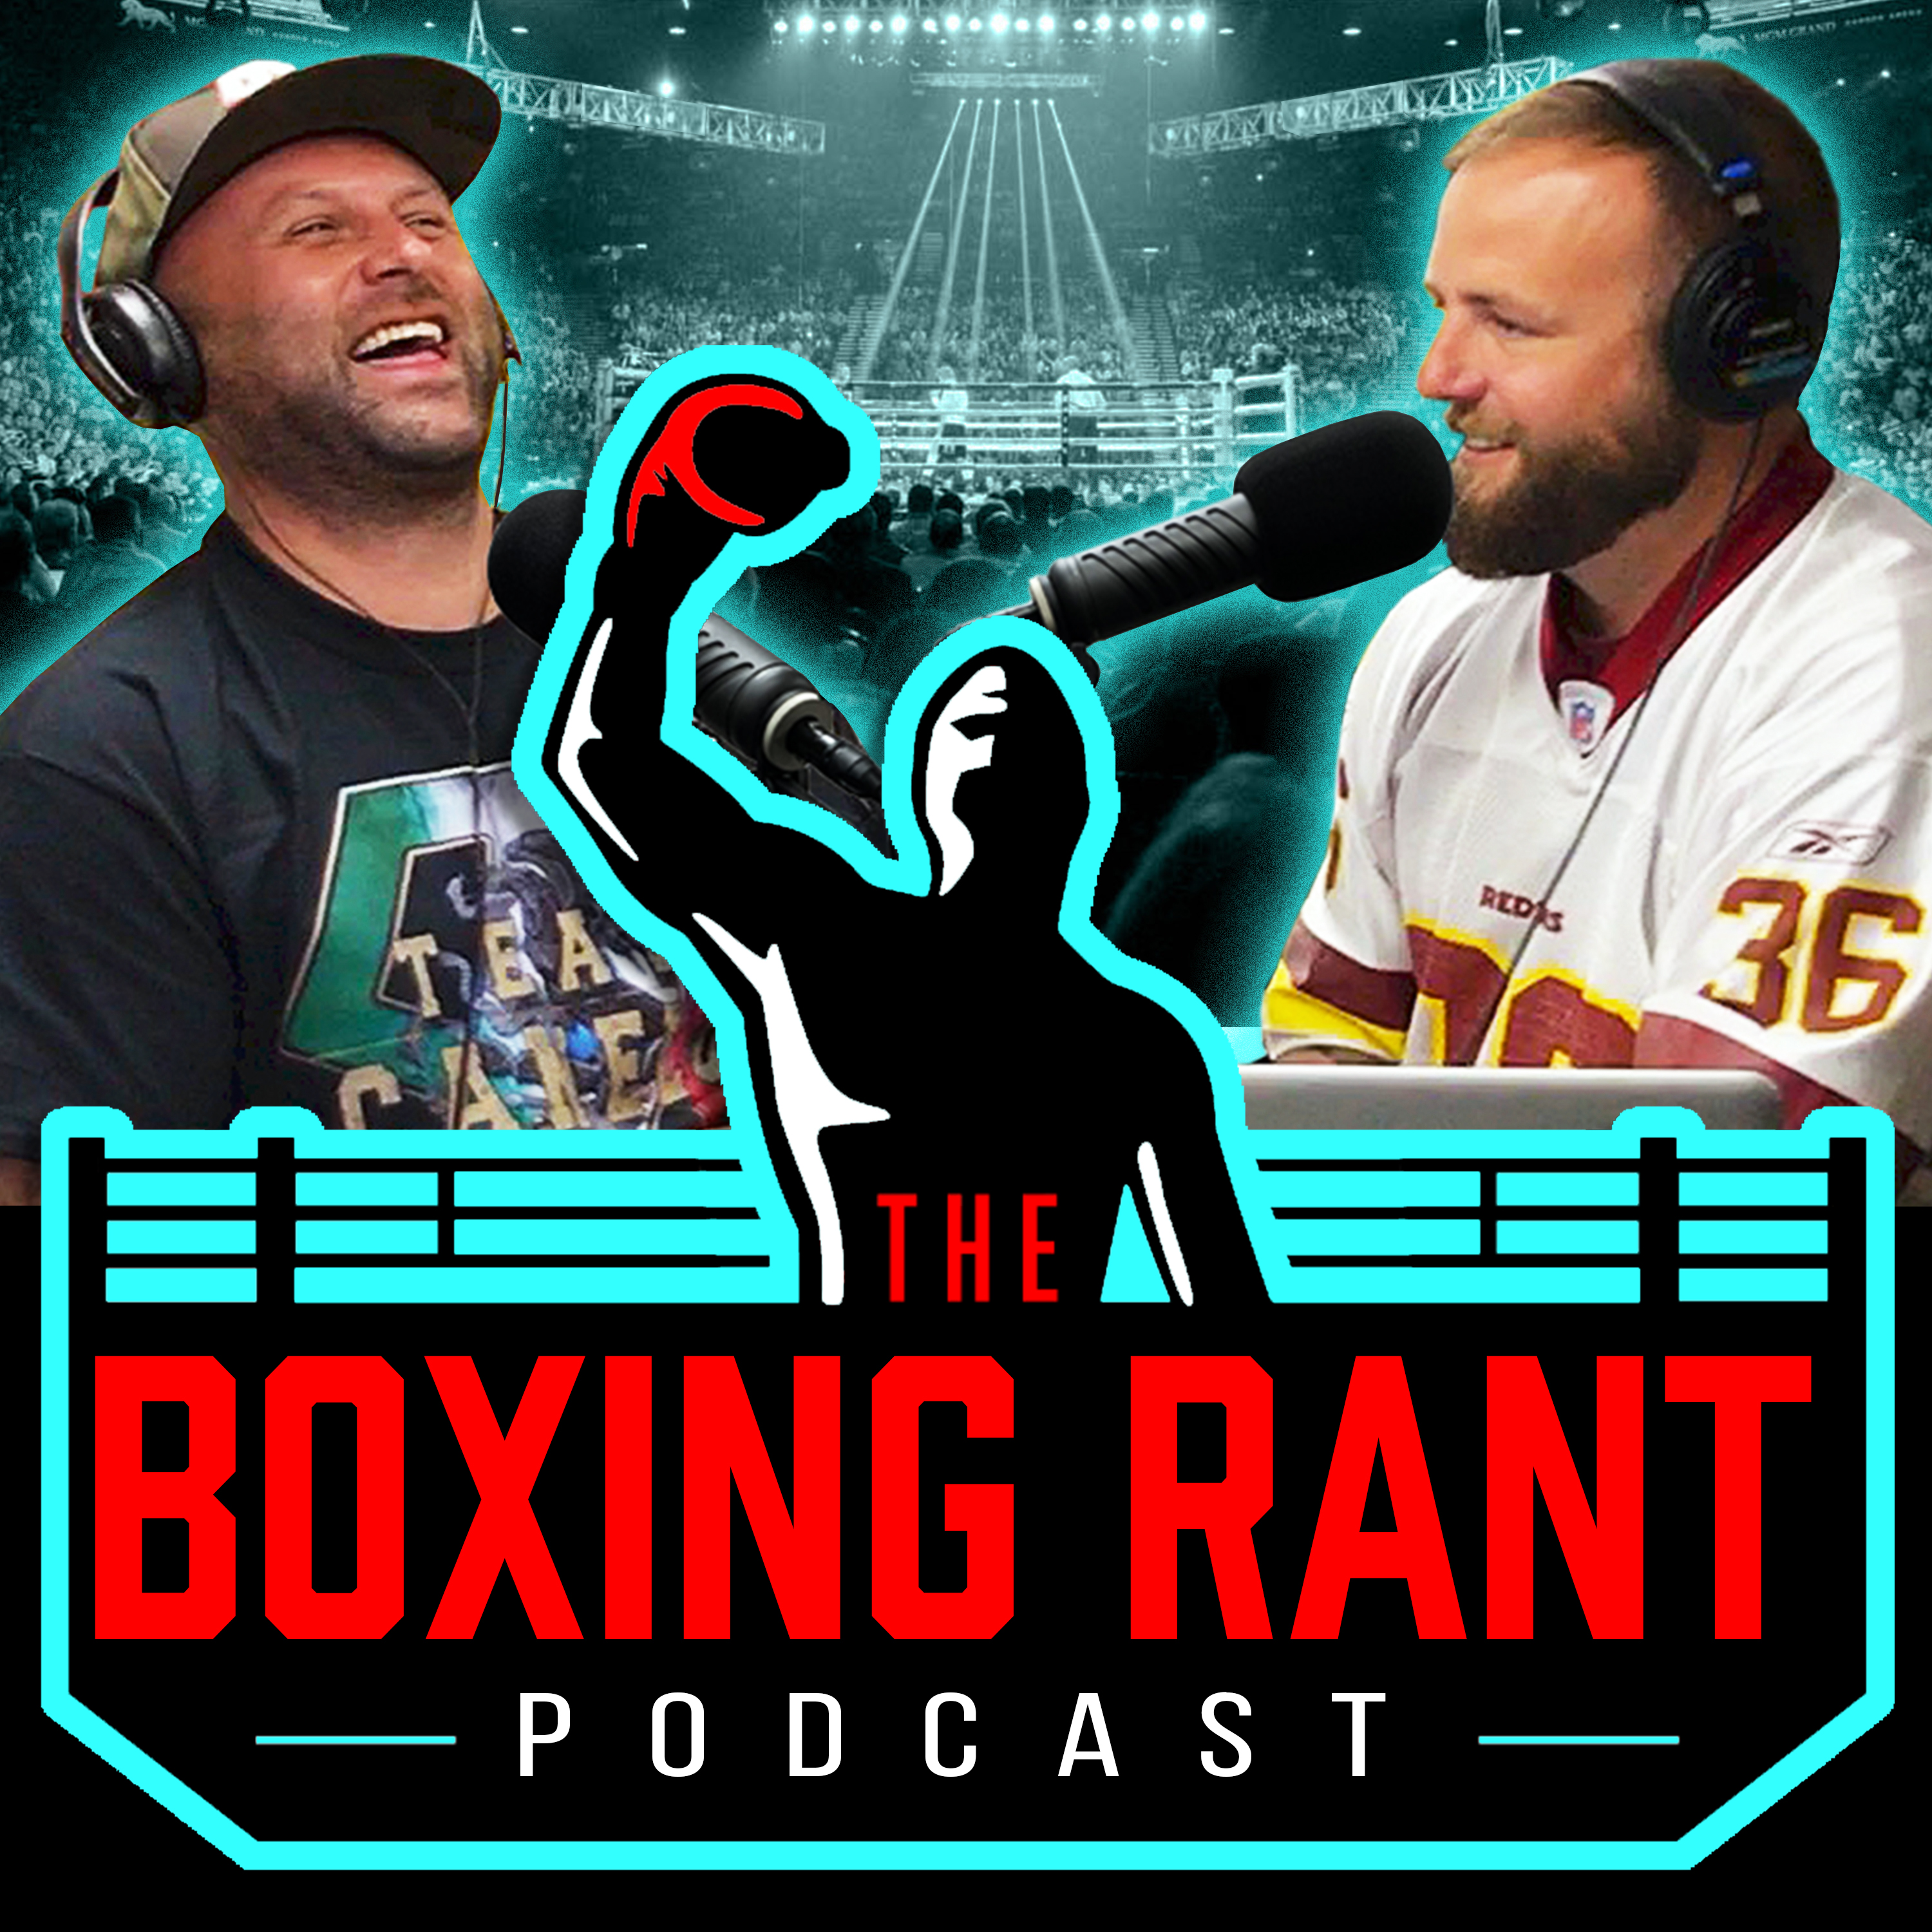 Ep276 - Mike Tyson, Errol Spence vs. Danny Garcia, DAZN is in Trouble, Boxing returns with mismatches